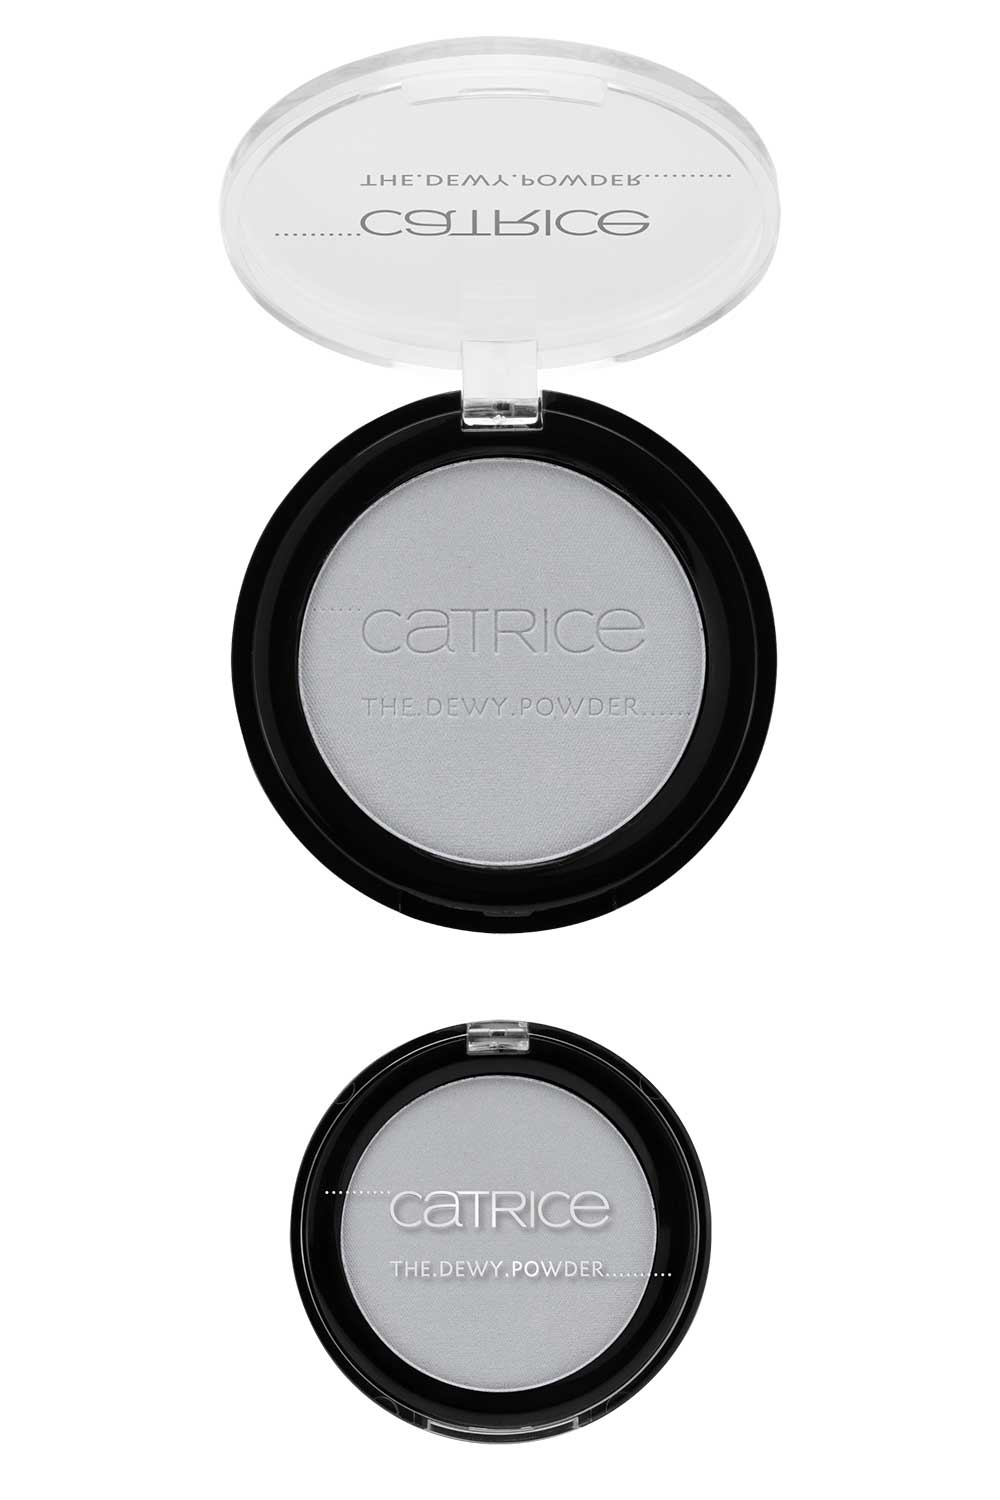 Catrice The Dewy Routine illuminating compact holographic